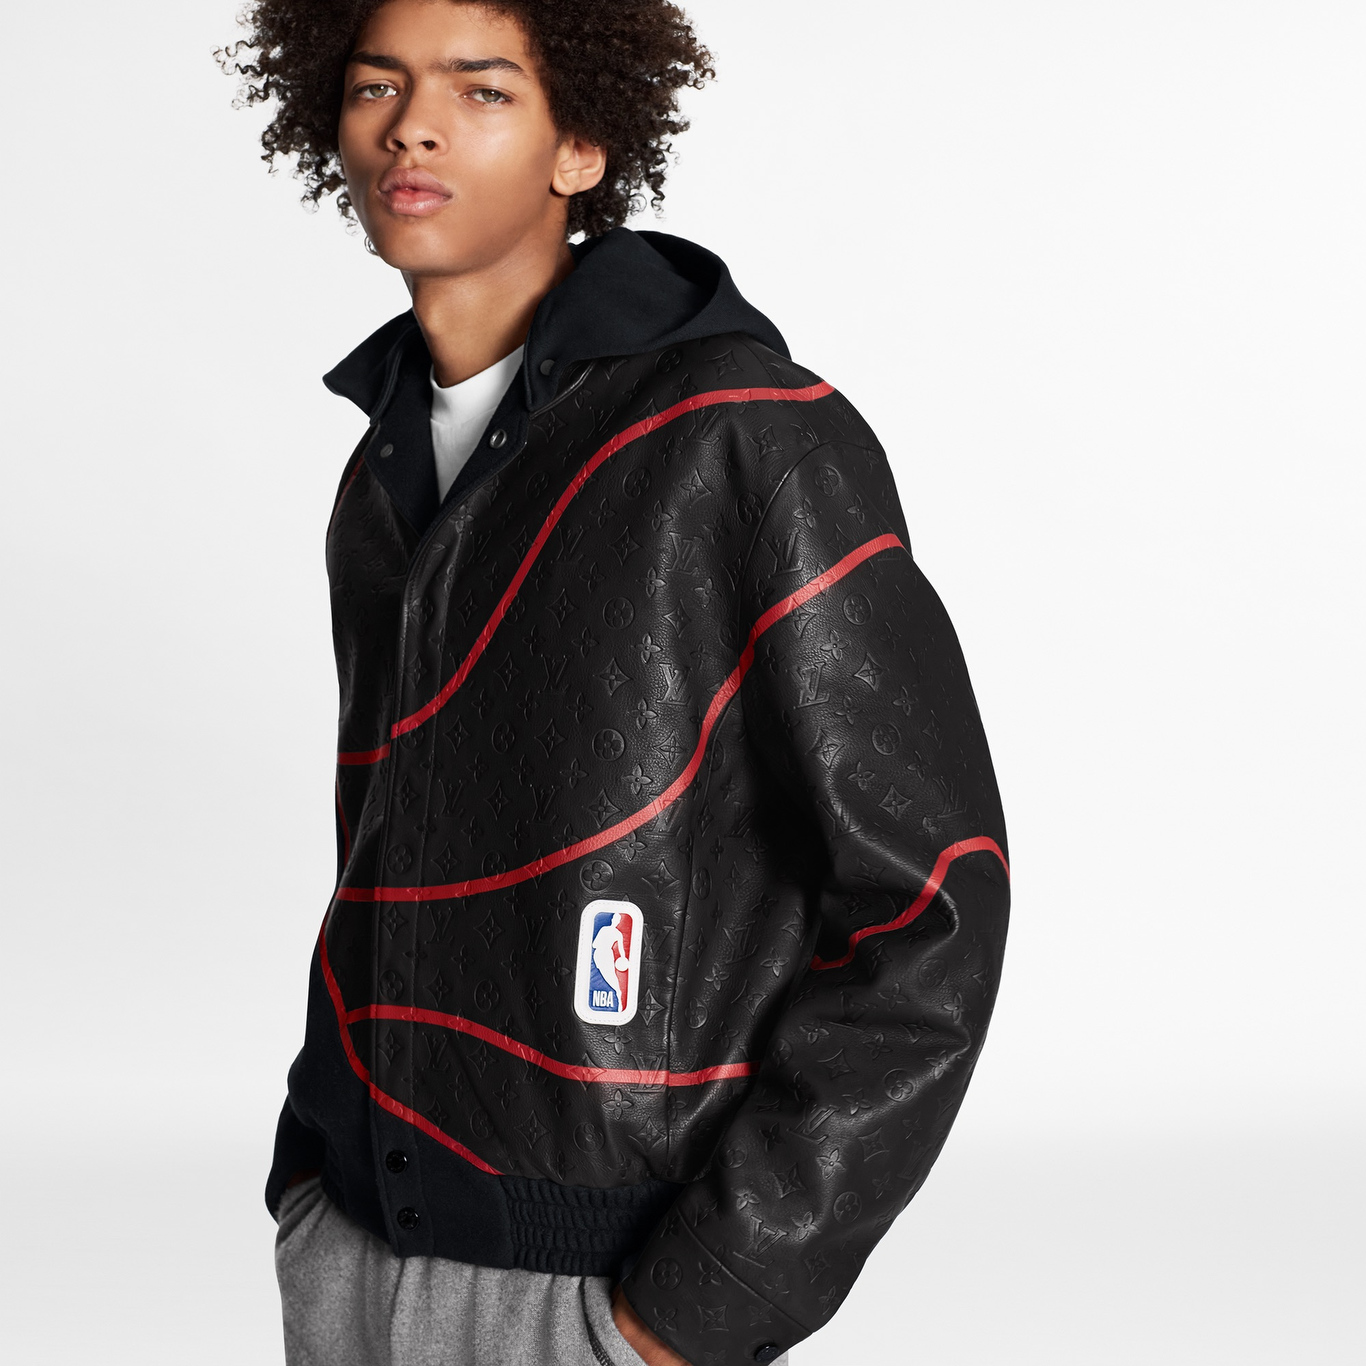 A look from the Louis Vuitton x NBA capsule collection